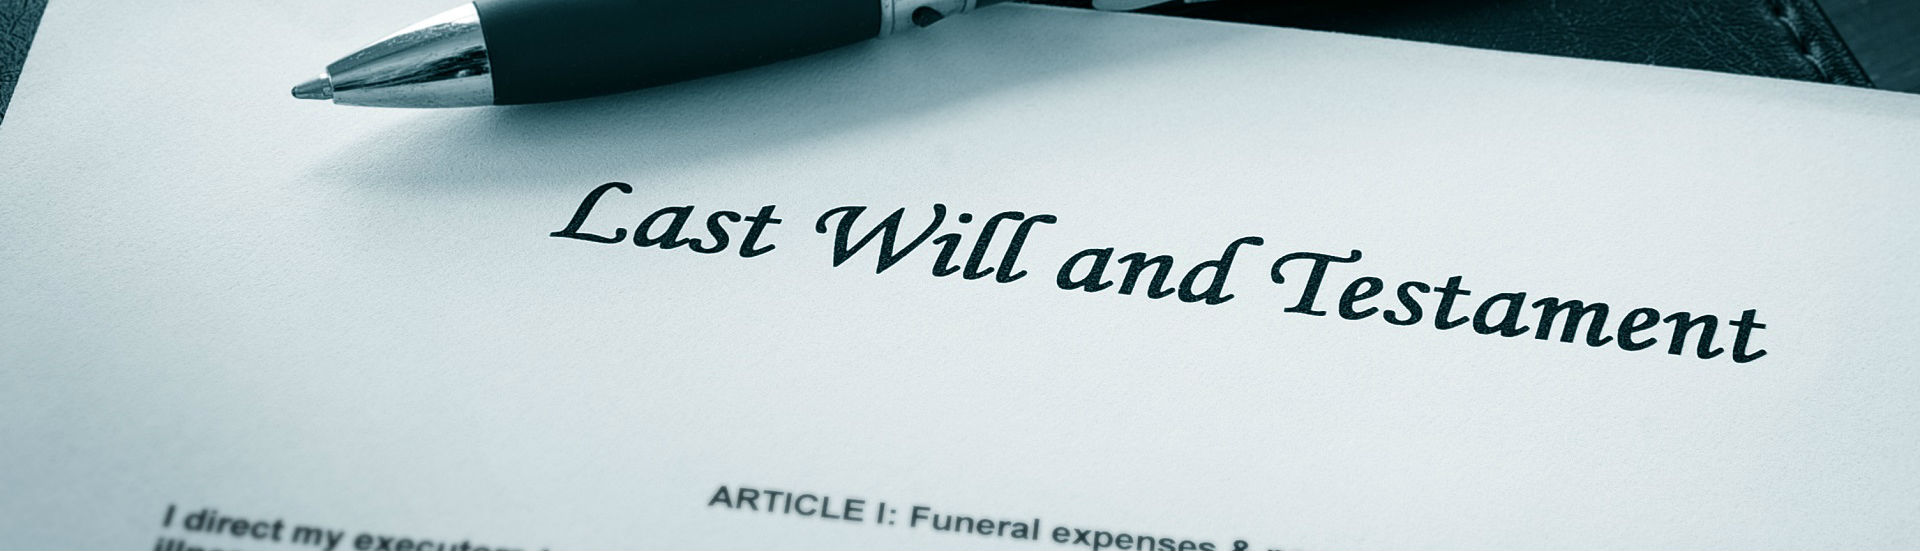 Experienced in the drafting of Wills and applications for Grants of Probate and Grants of Administration